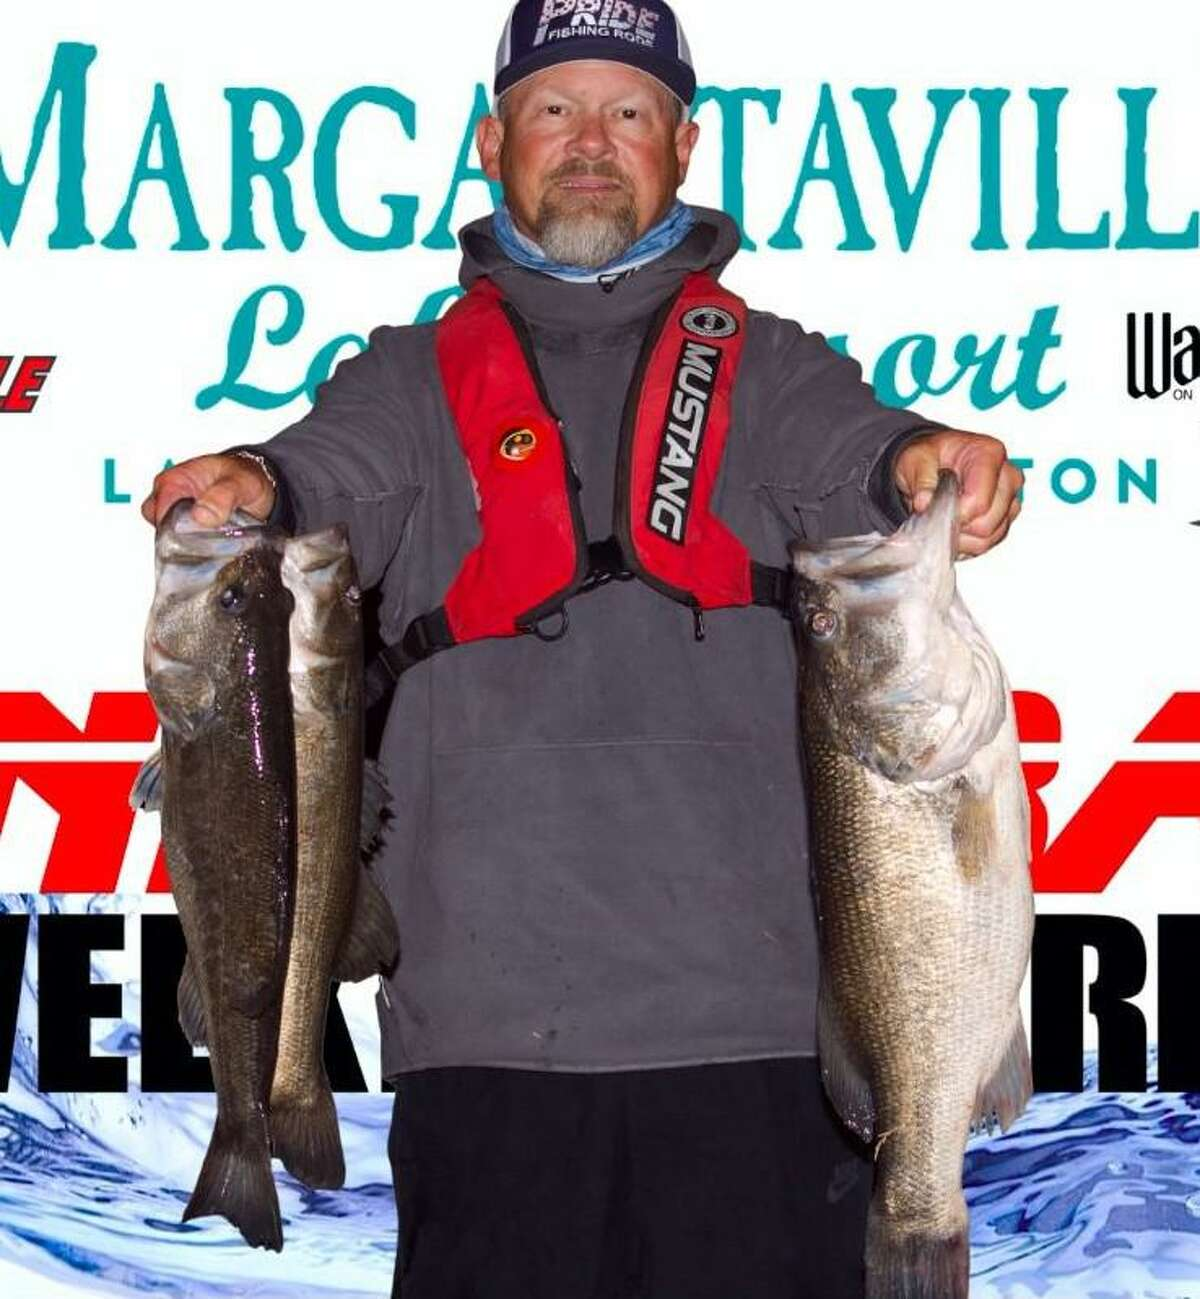 Scott Stephens and Michael Burks claimed second place in the CONROEBASS Tuesday Tournament with a total weight of 14.72 pounds.